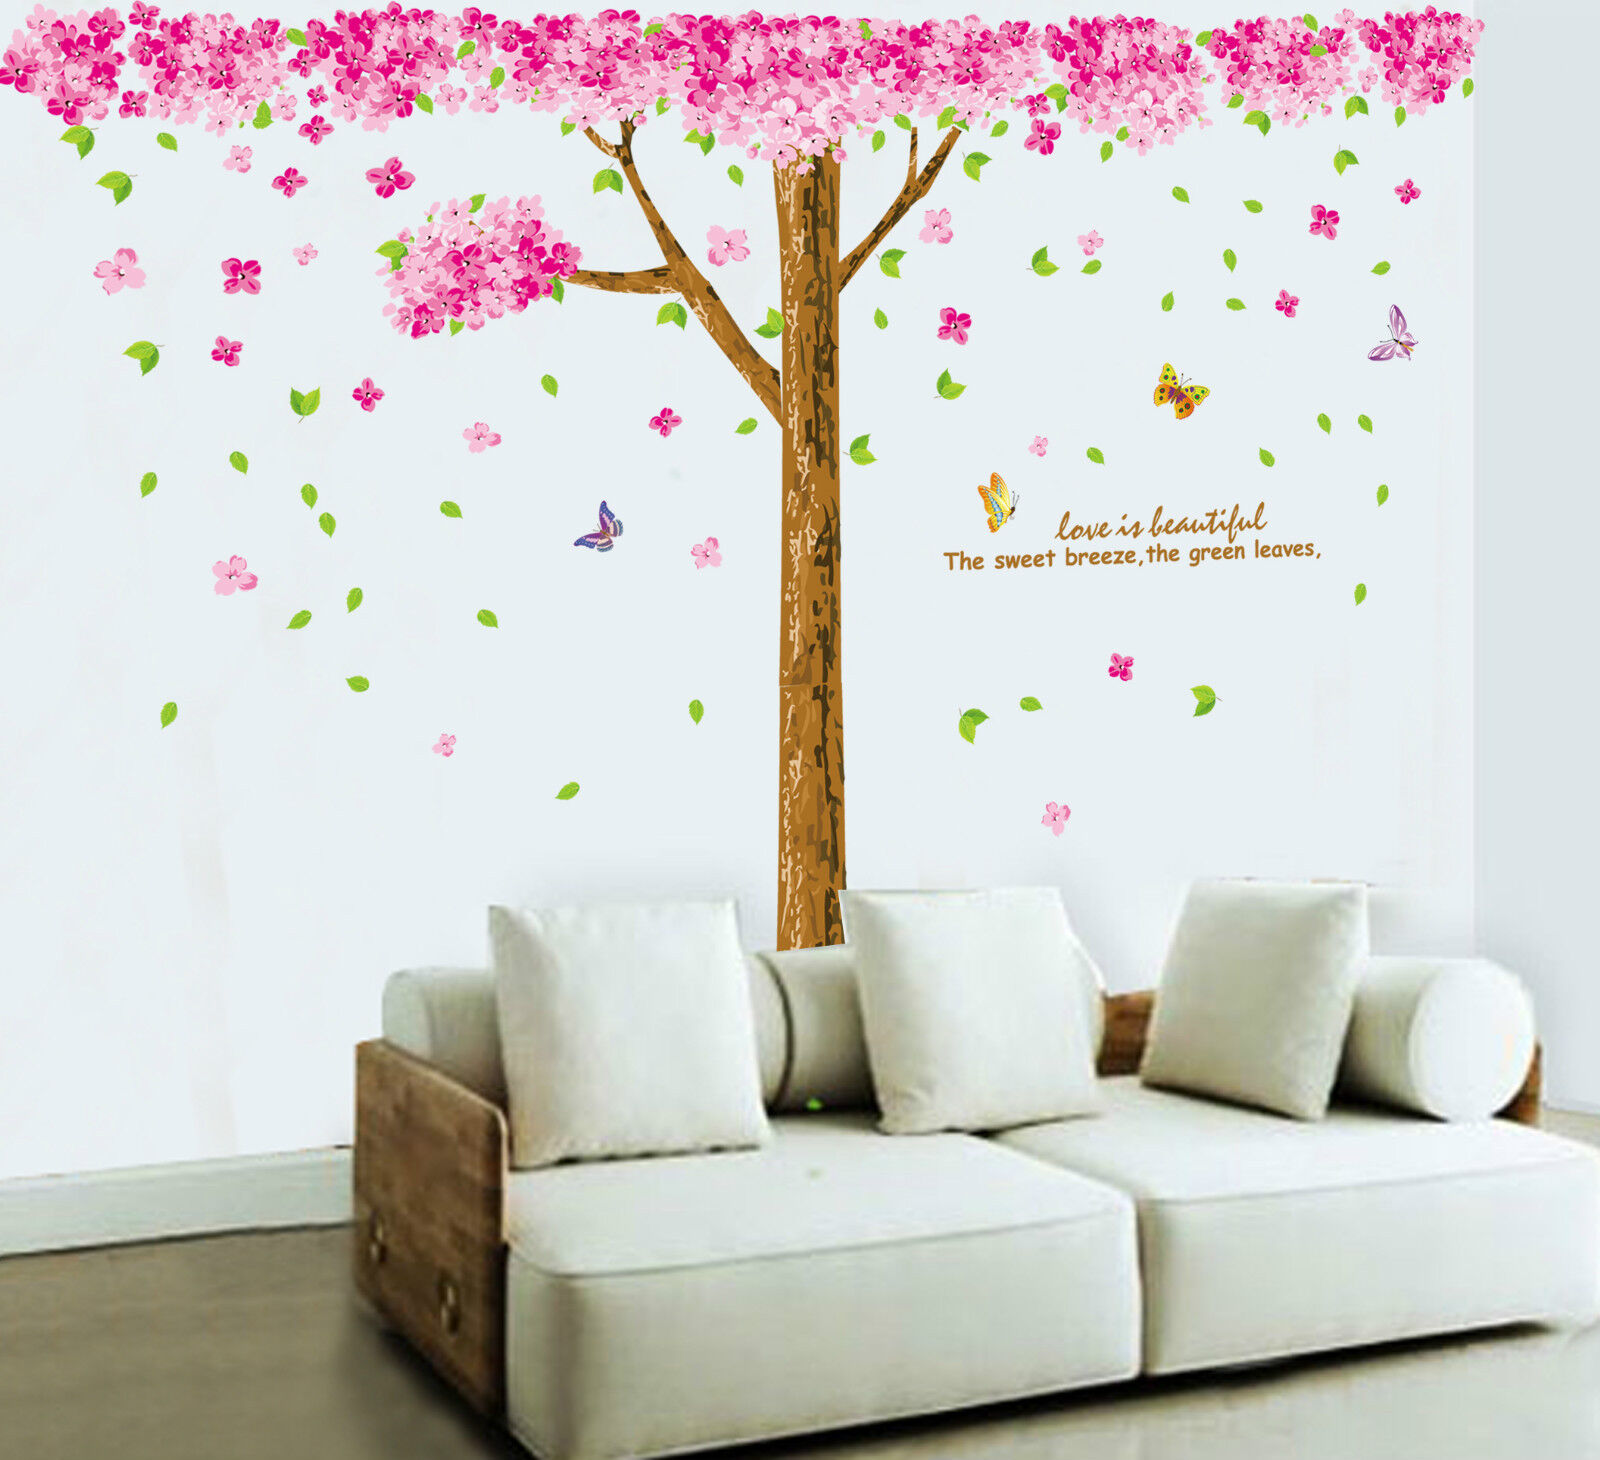 Large cherry blossom flowers tree removable wall art for Cherry blossom tree mural